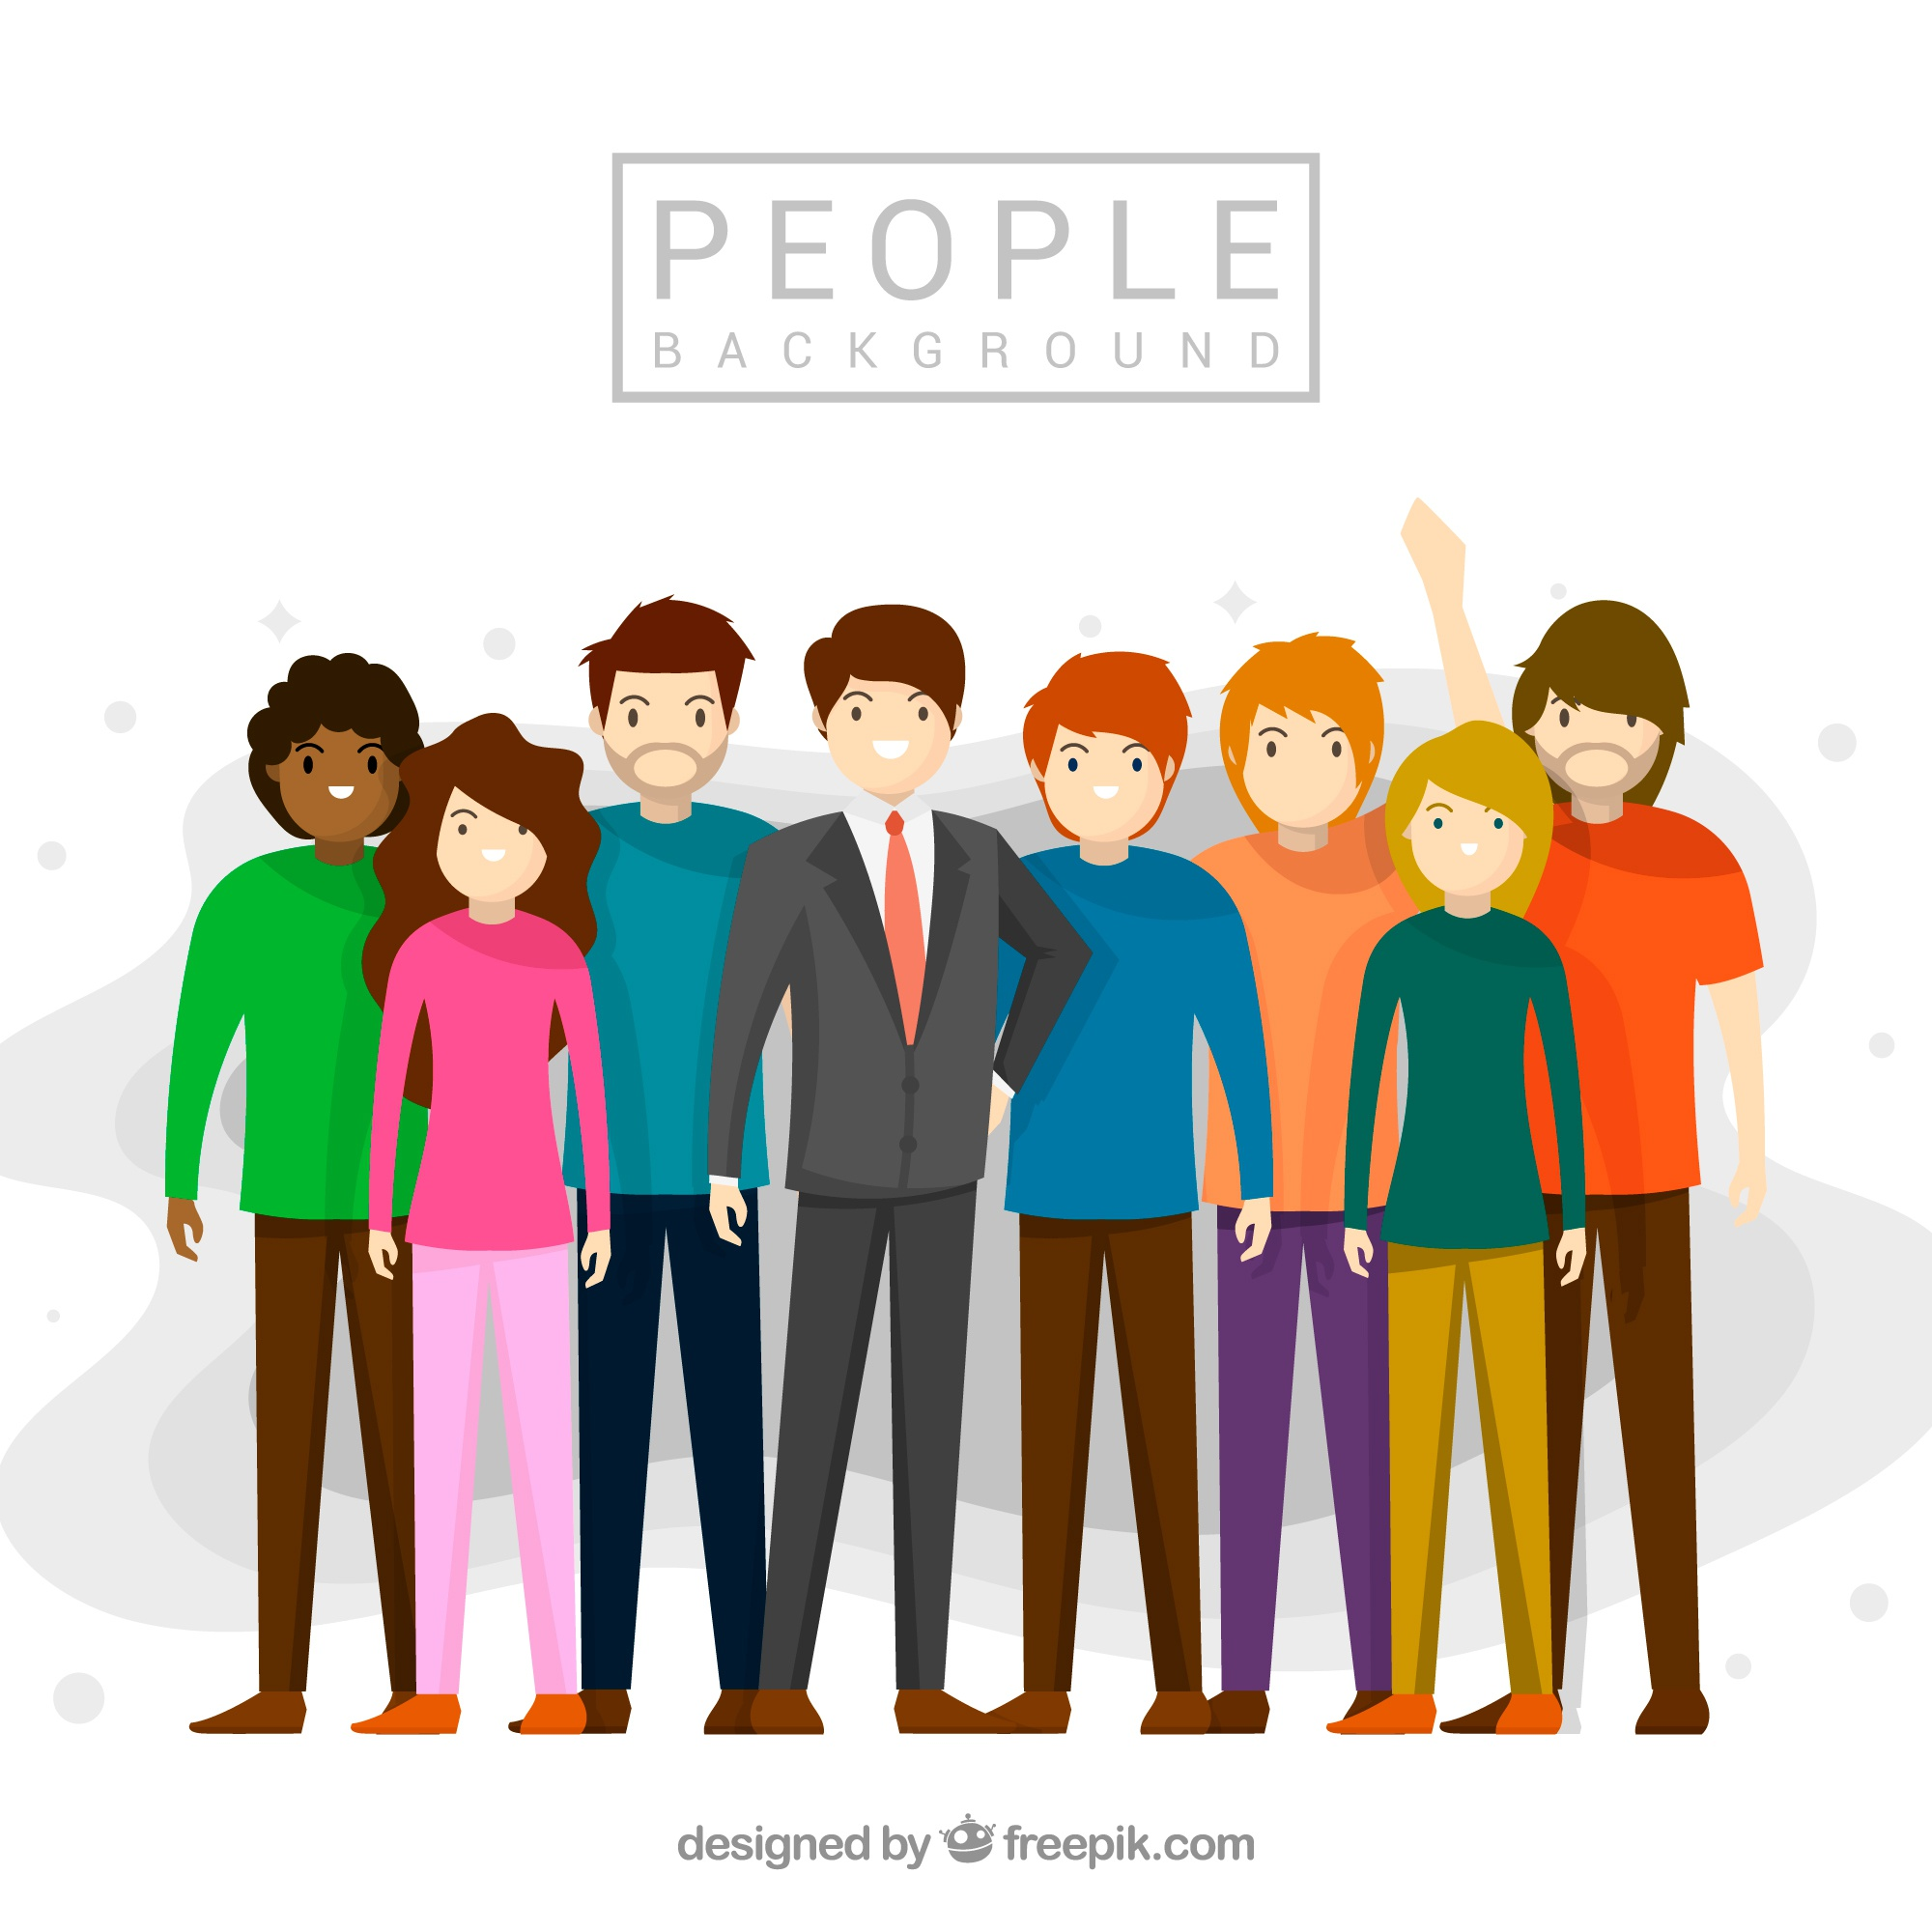 People group background